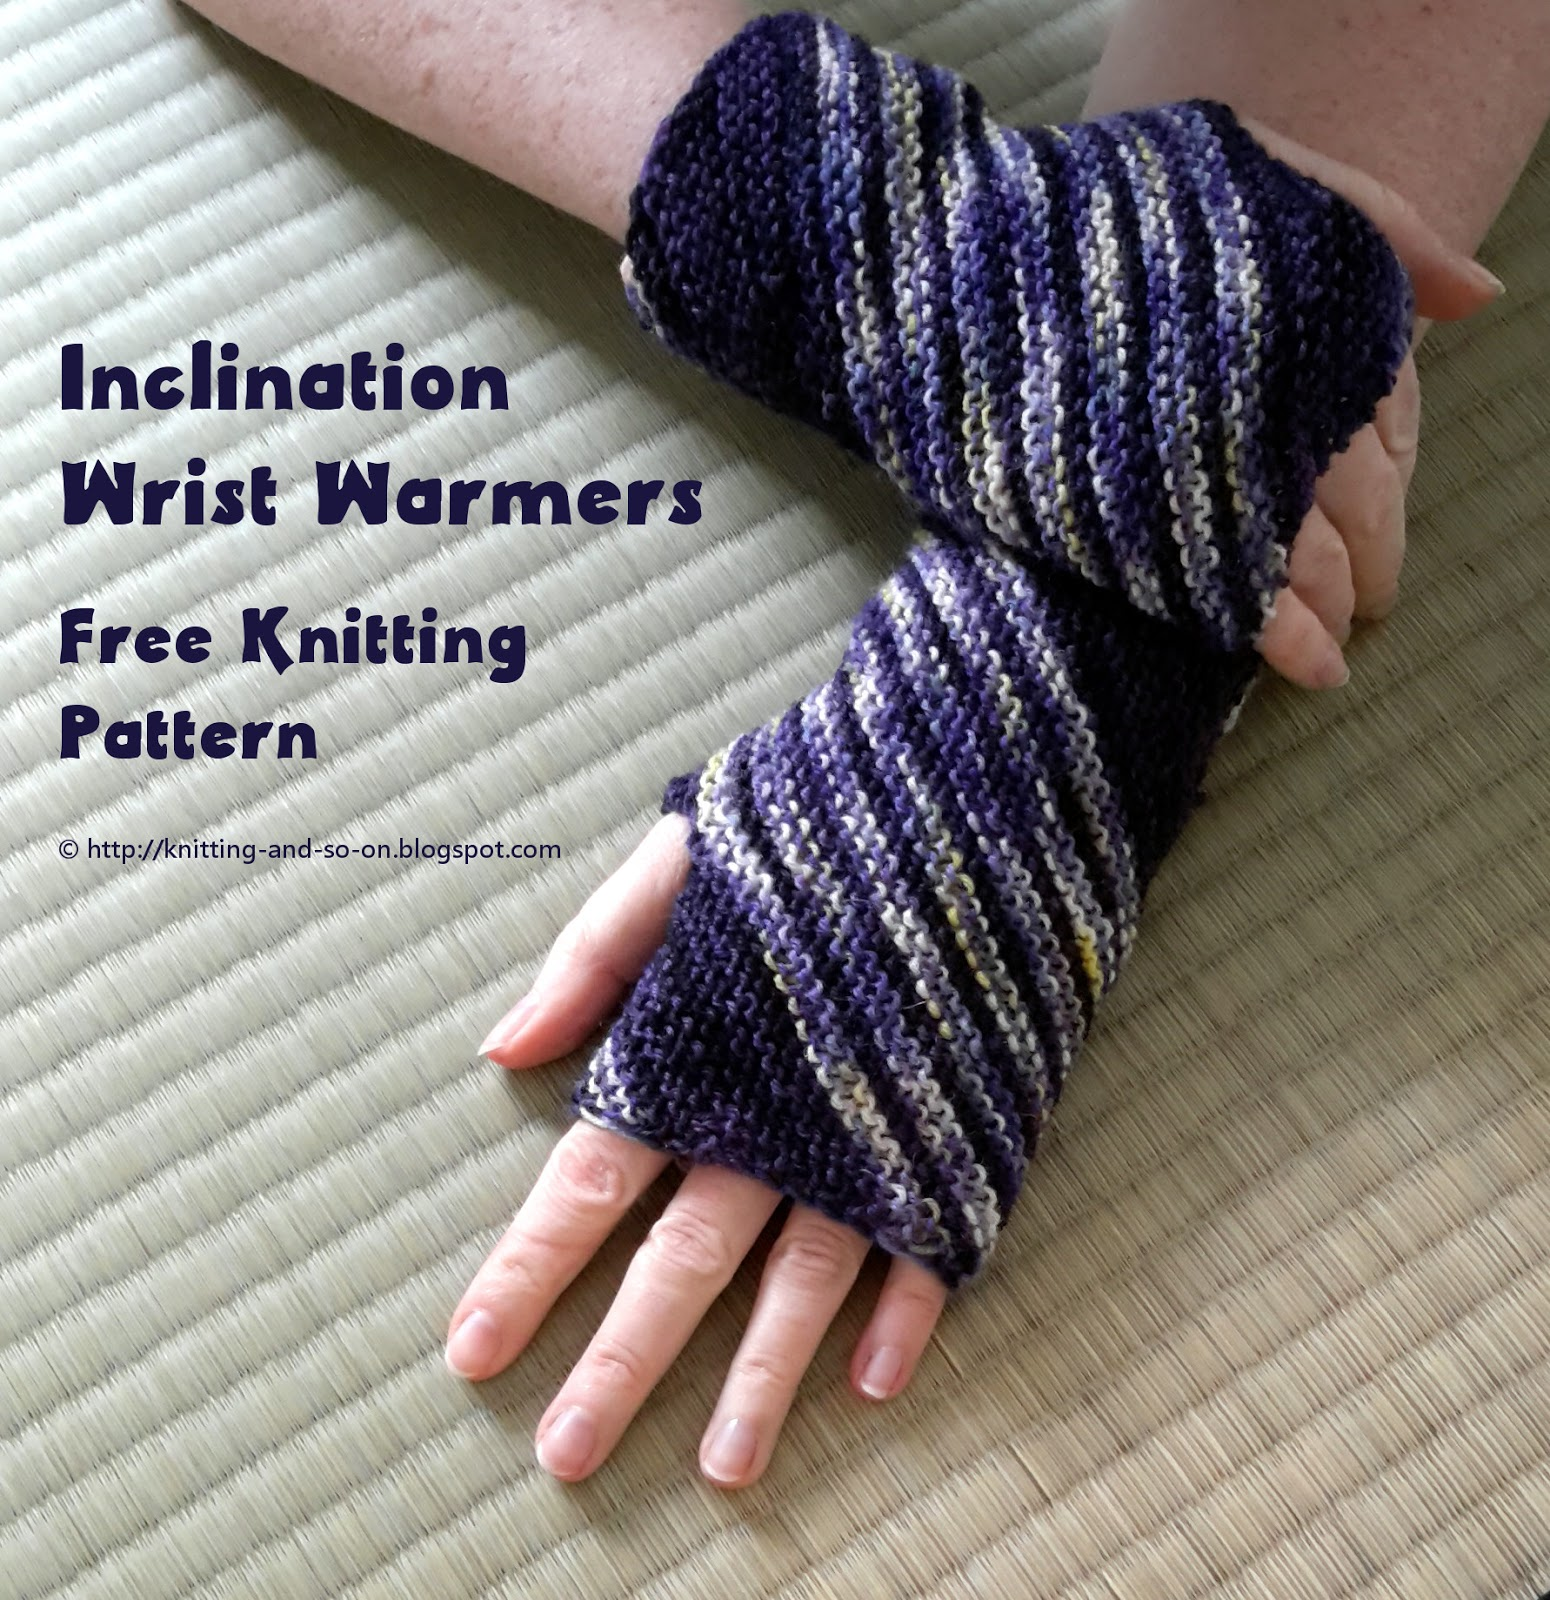 Knitting and so on: Inclination Wrist Warmers